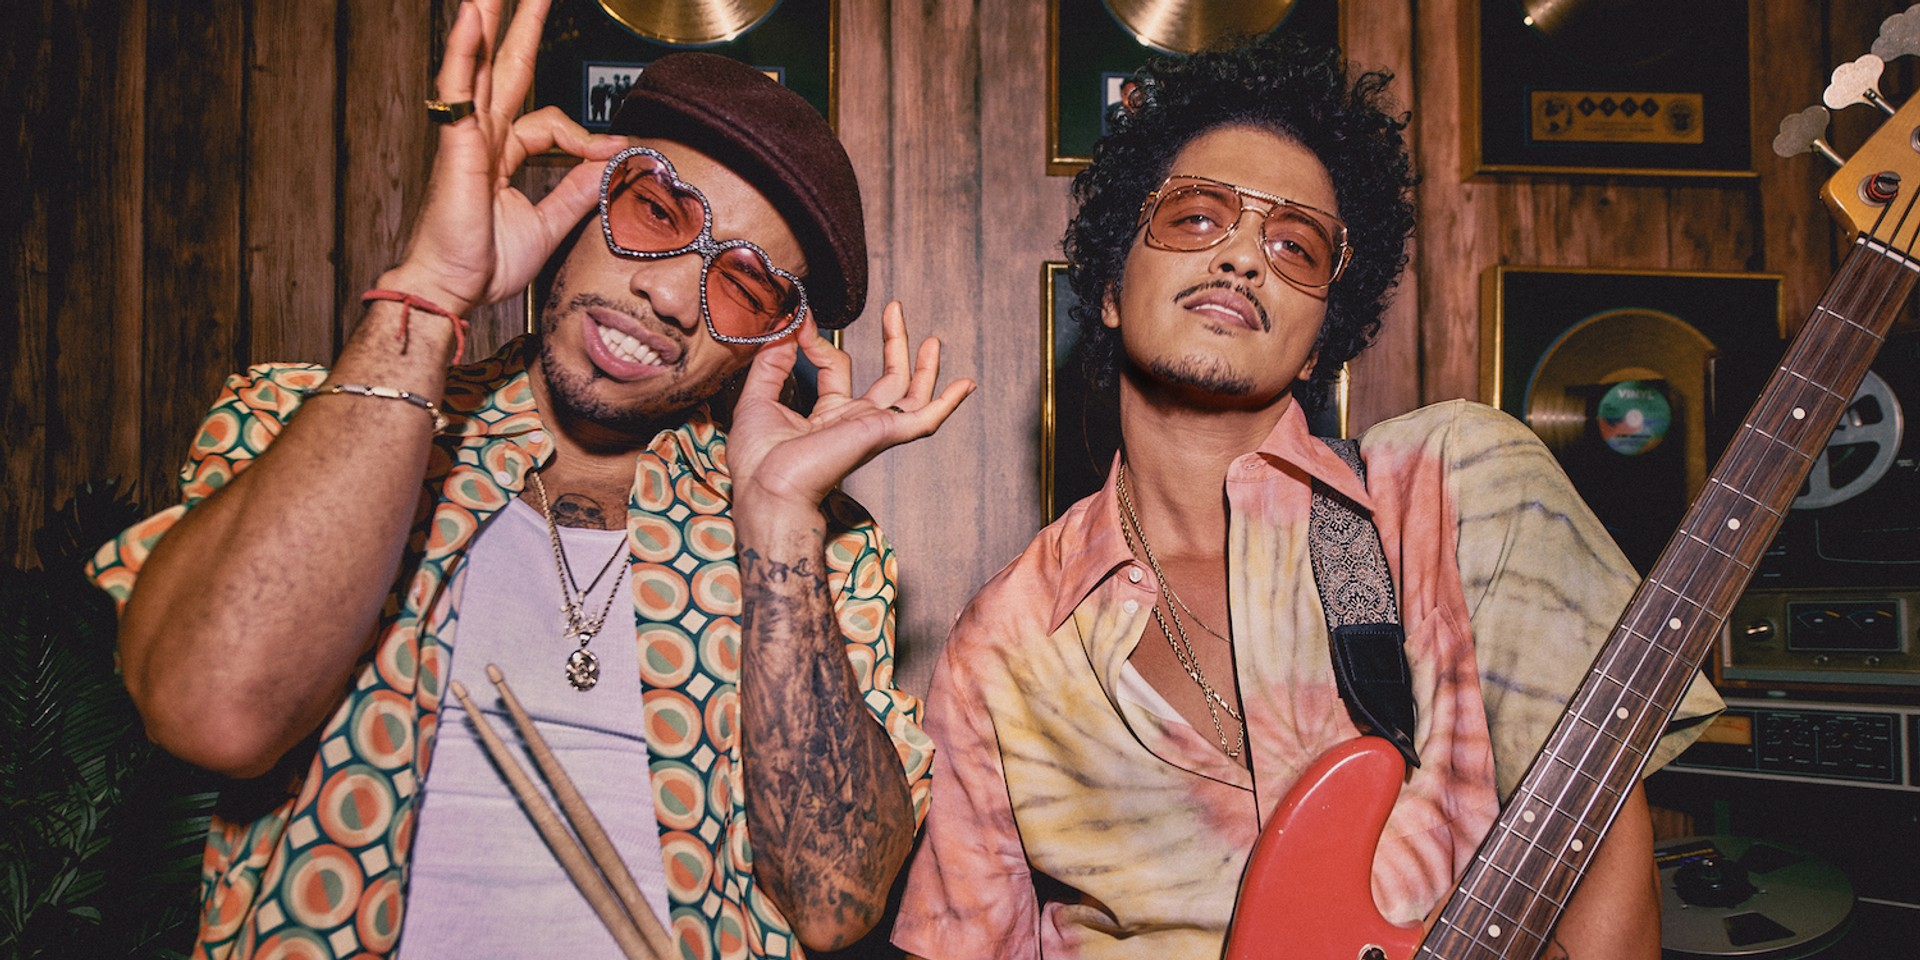 Bruno Mars and Anderson .Paak team up to form 'Silk Sonic', announce collaborative album